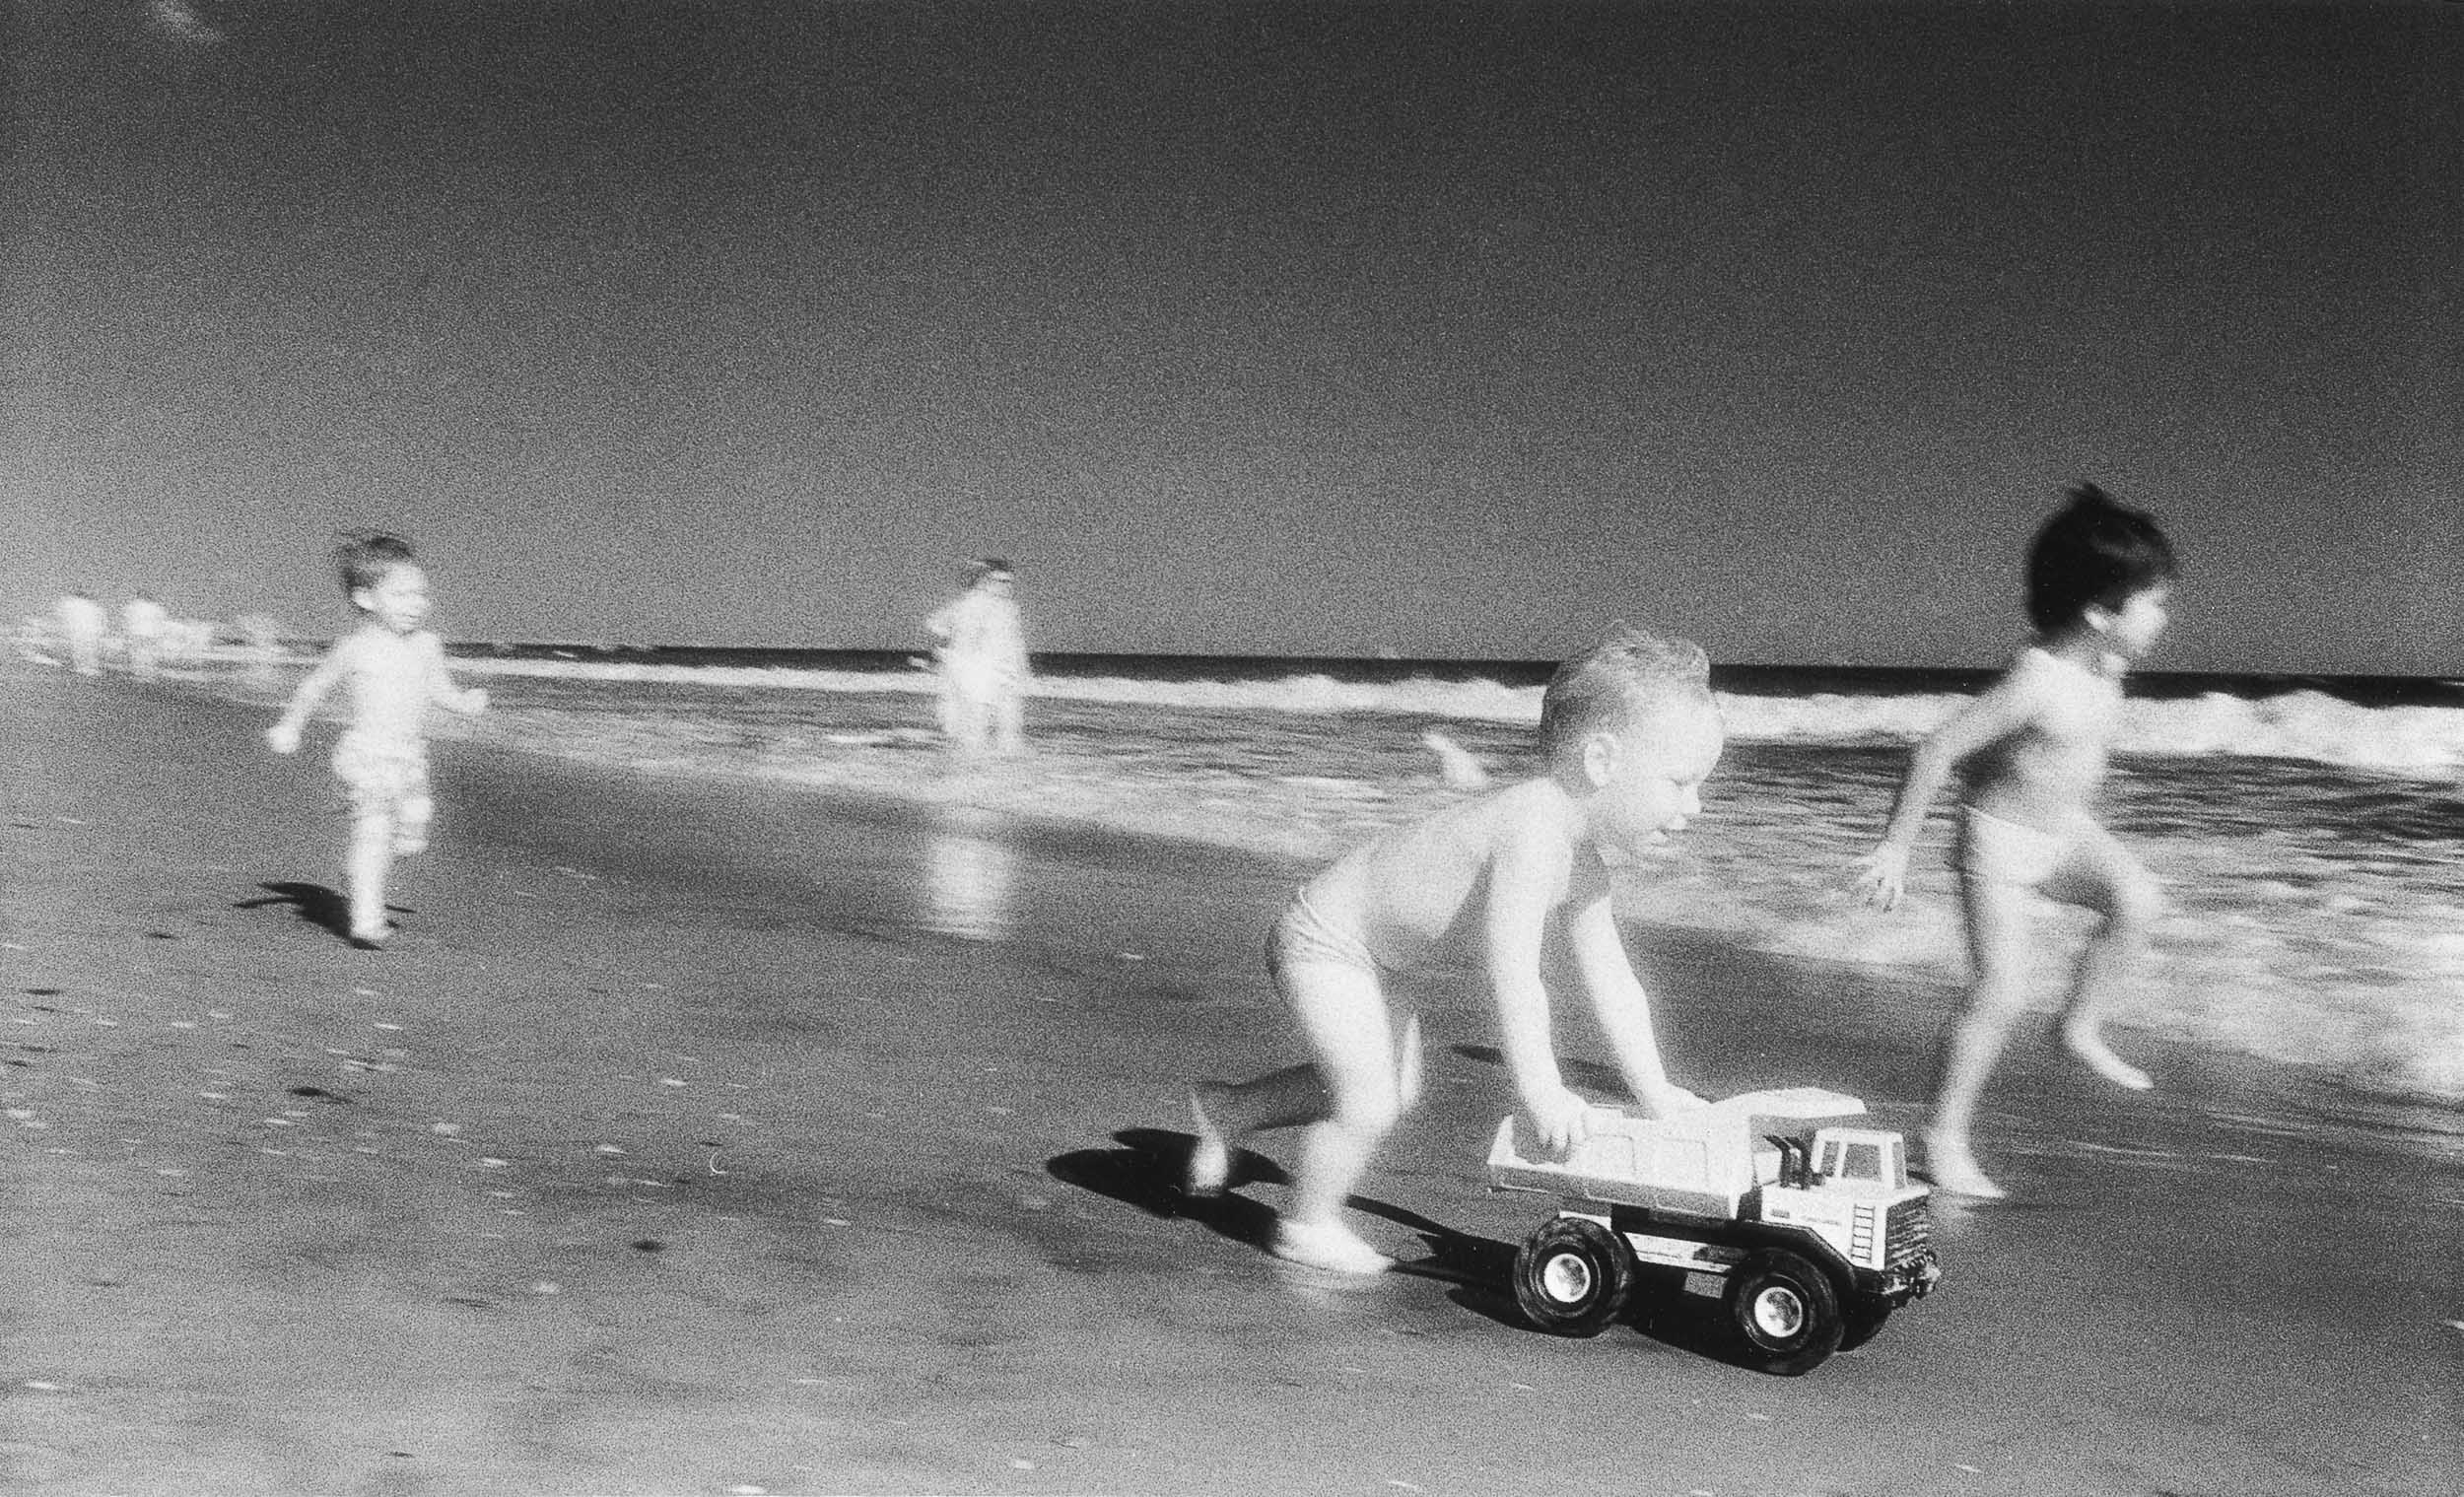 Barbara Alper- Photo of young boys playing with a toy truck on Rockaway Beach NYC